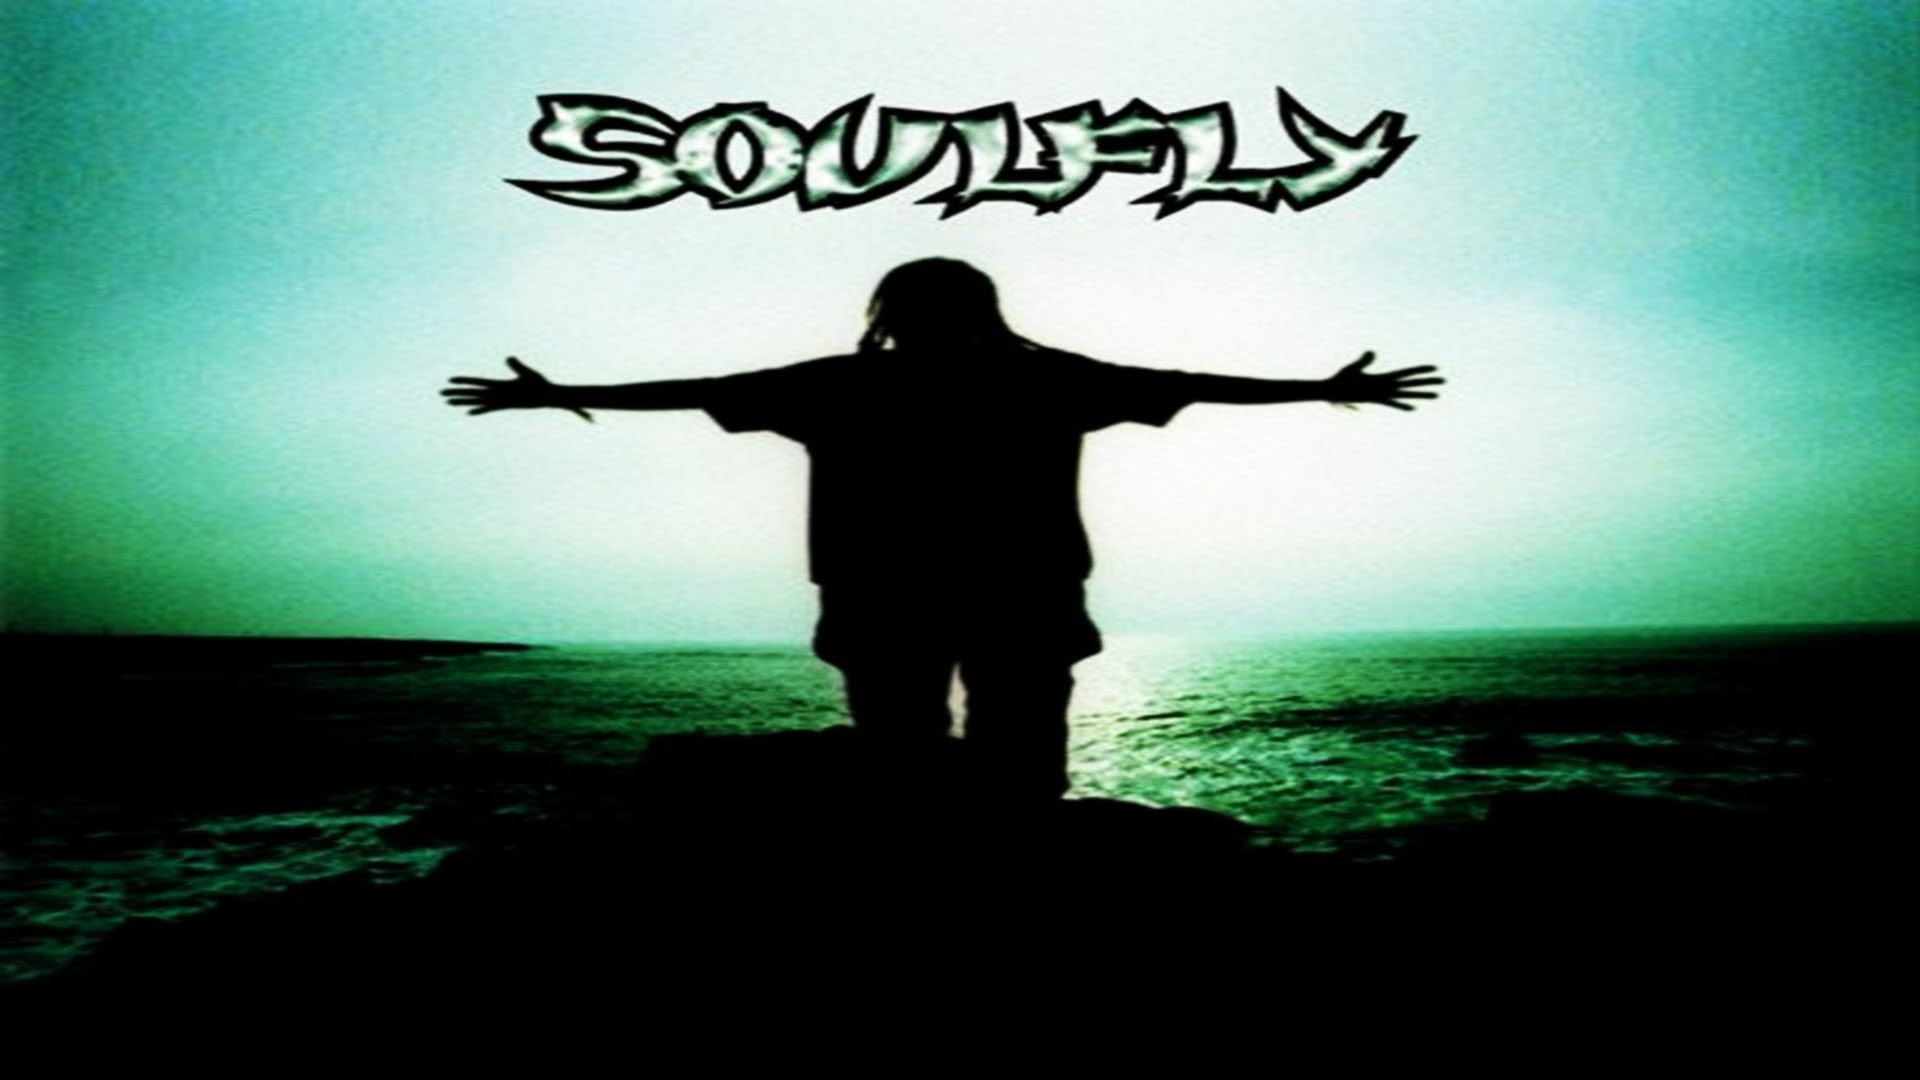 High Resolution Wallpaper | Soulfly 1920x1080 px